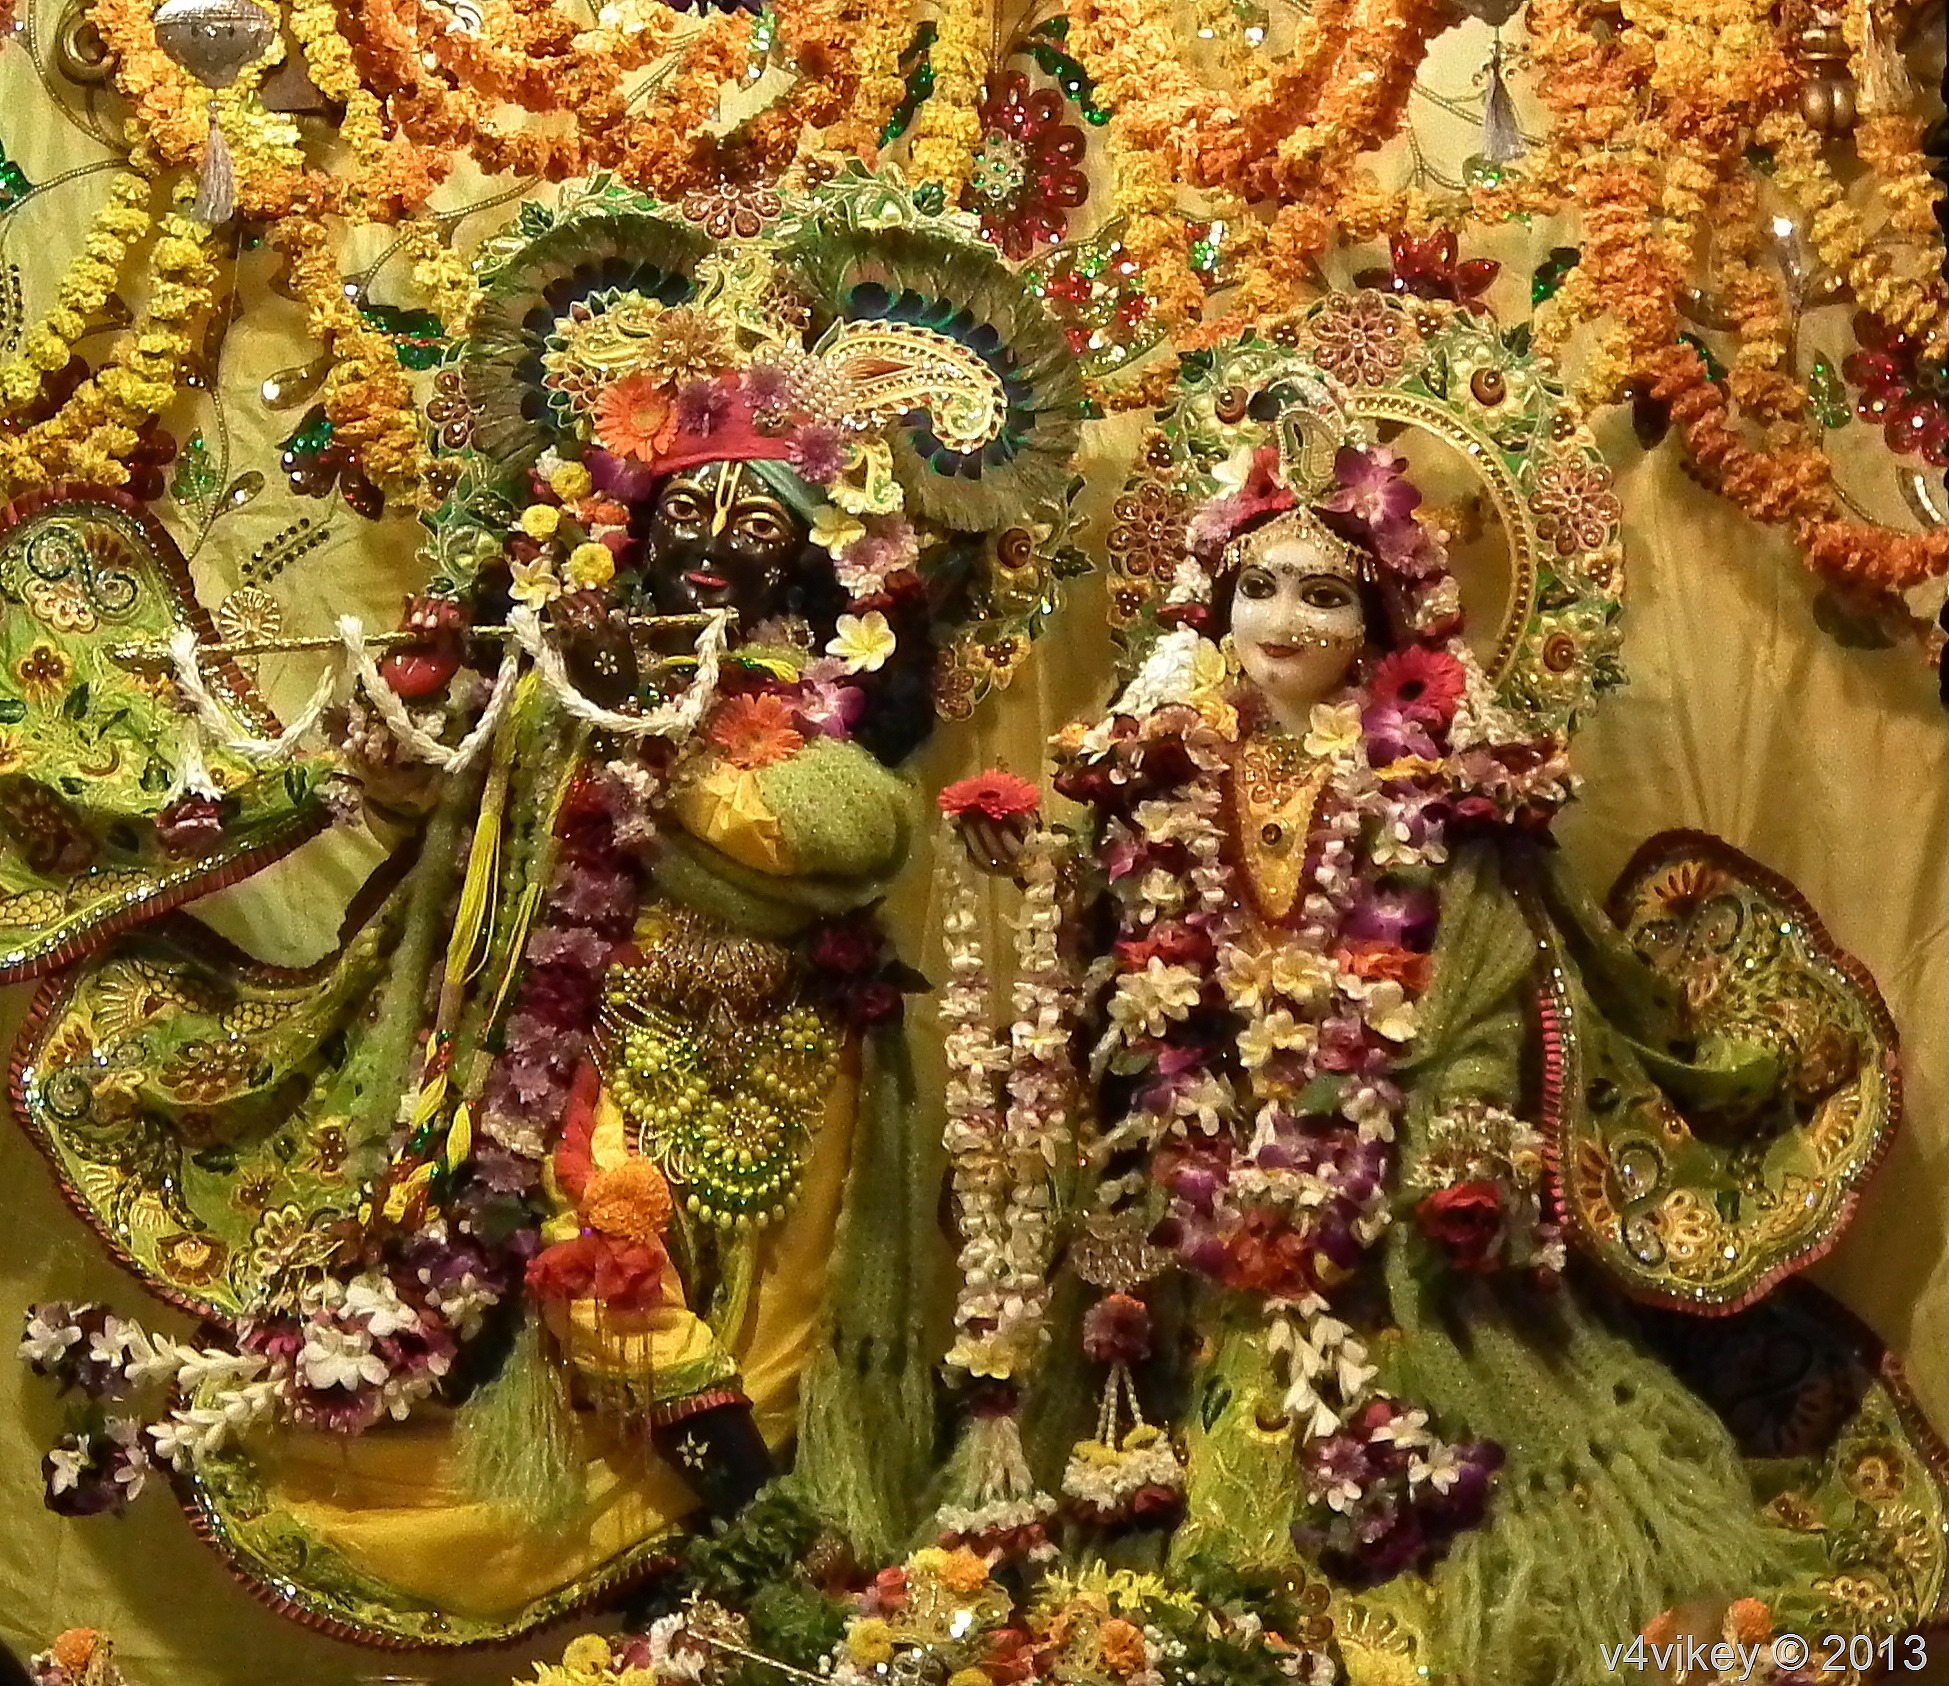 Lord Krishna With Gopis 3d Wallpaper Sri Sri Radha Shyamasundara Statue Of Vrindavan Iskcon